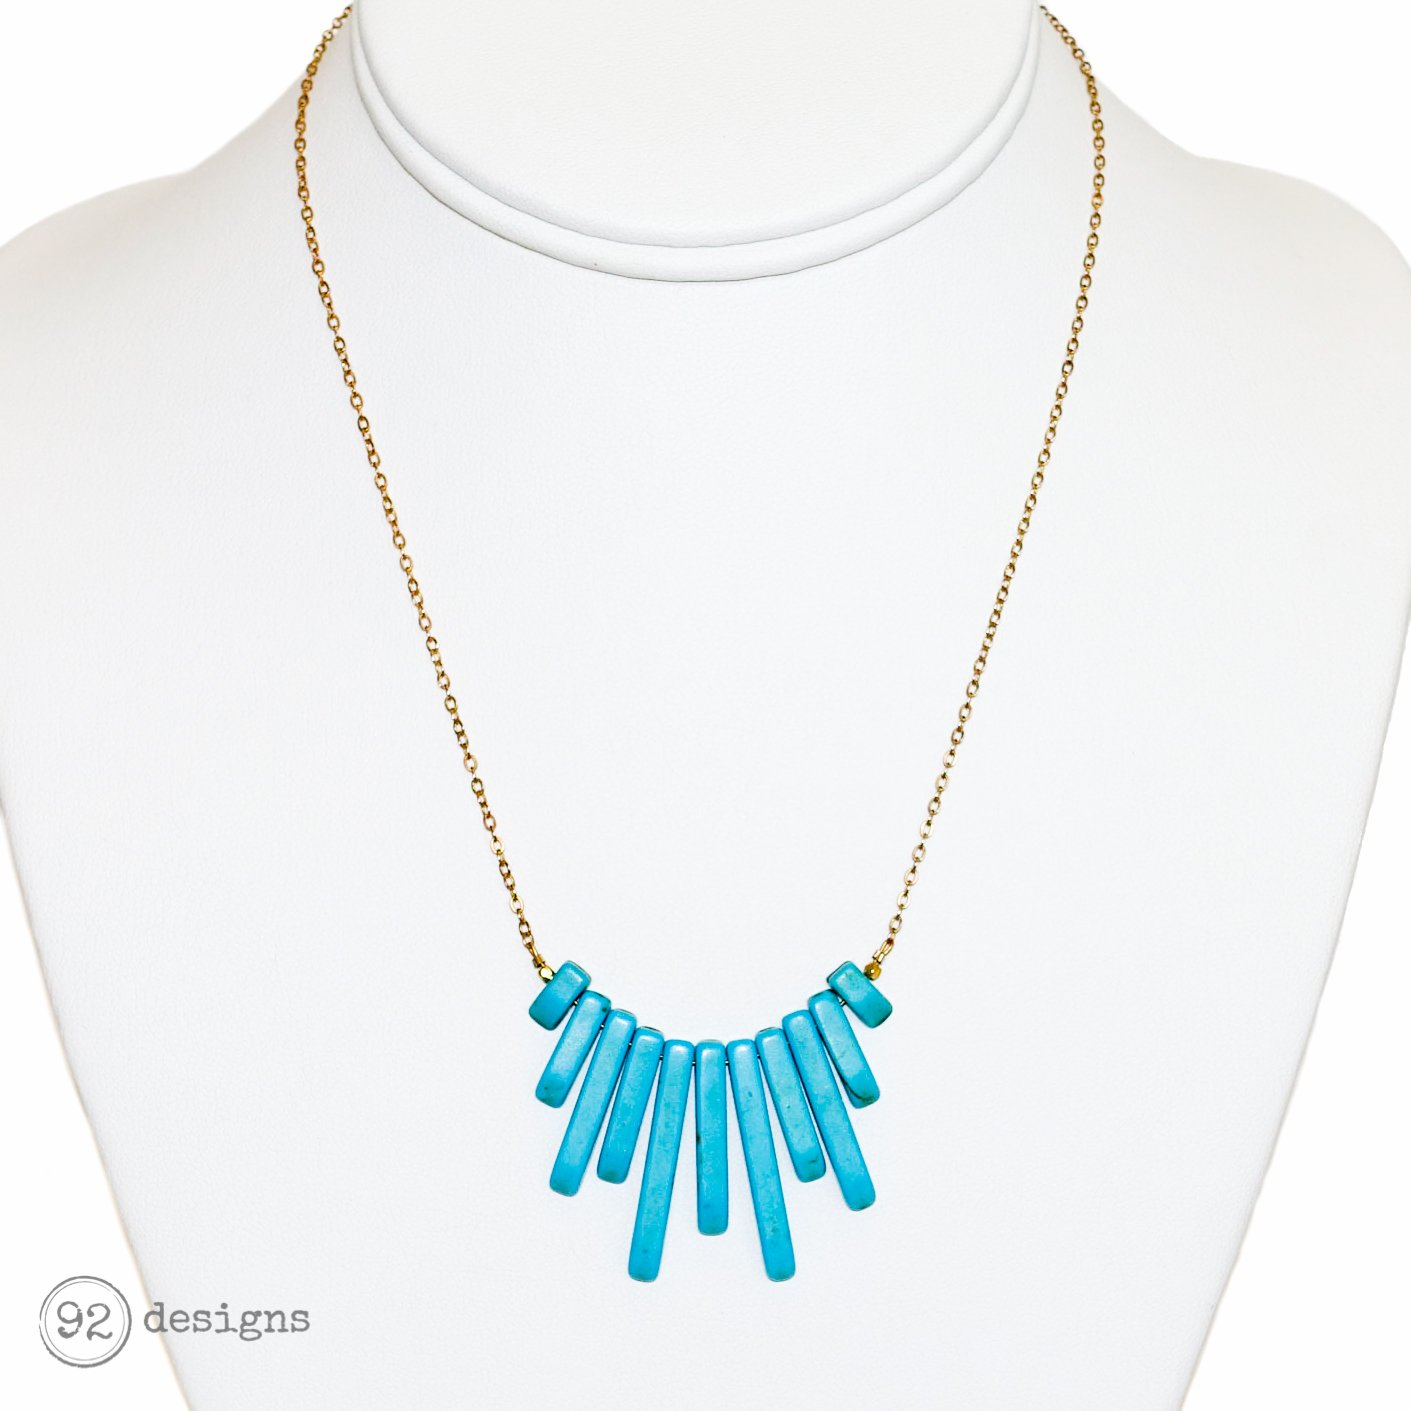 jewellery turquoise necklace vida products pura bracelets bar